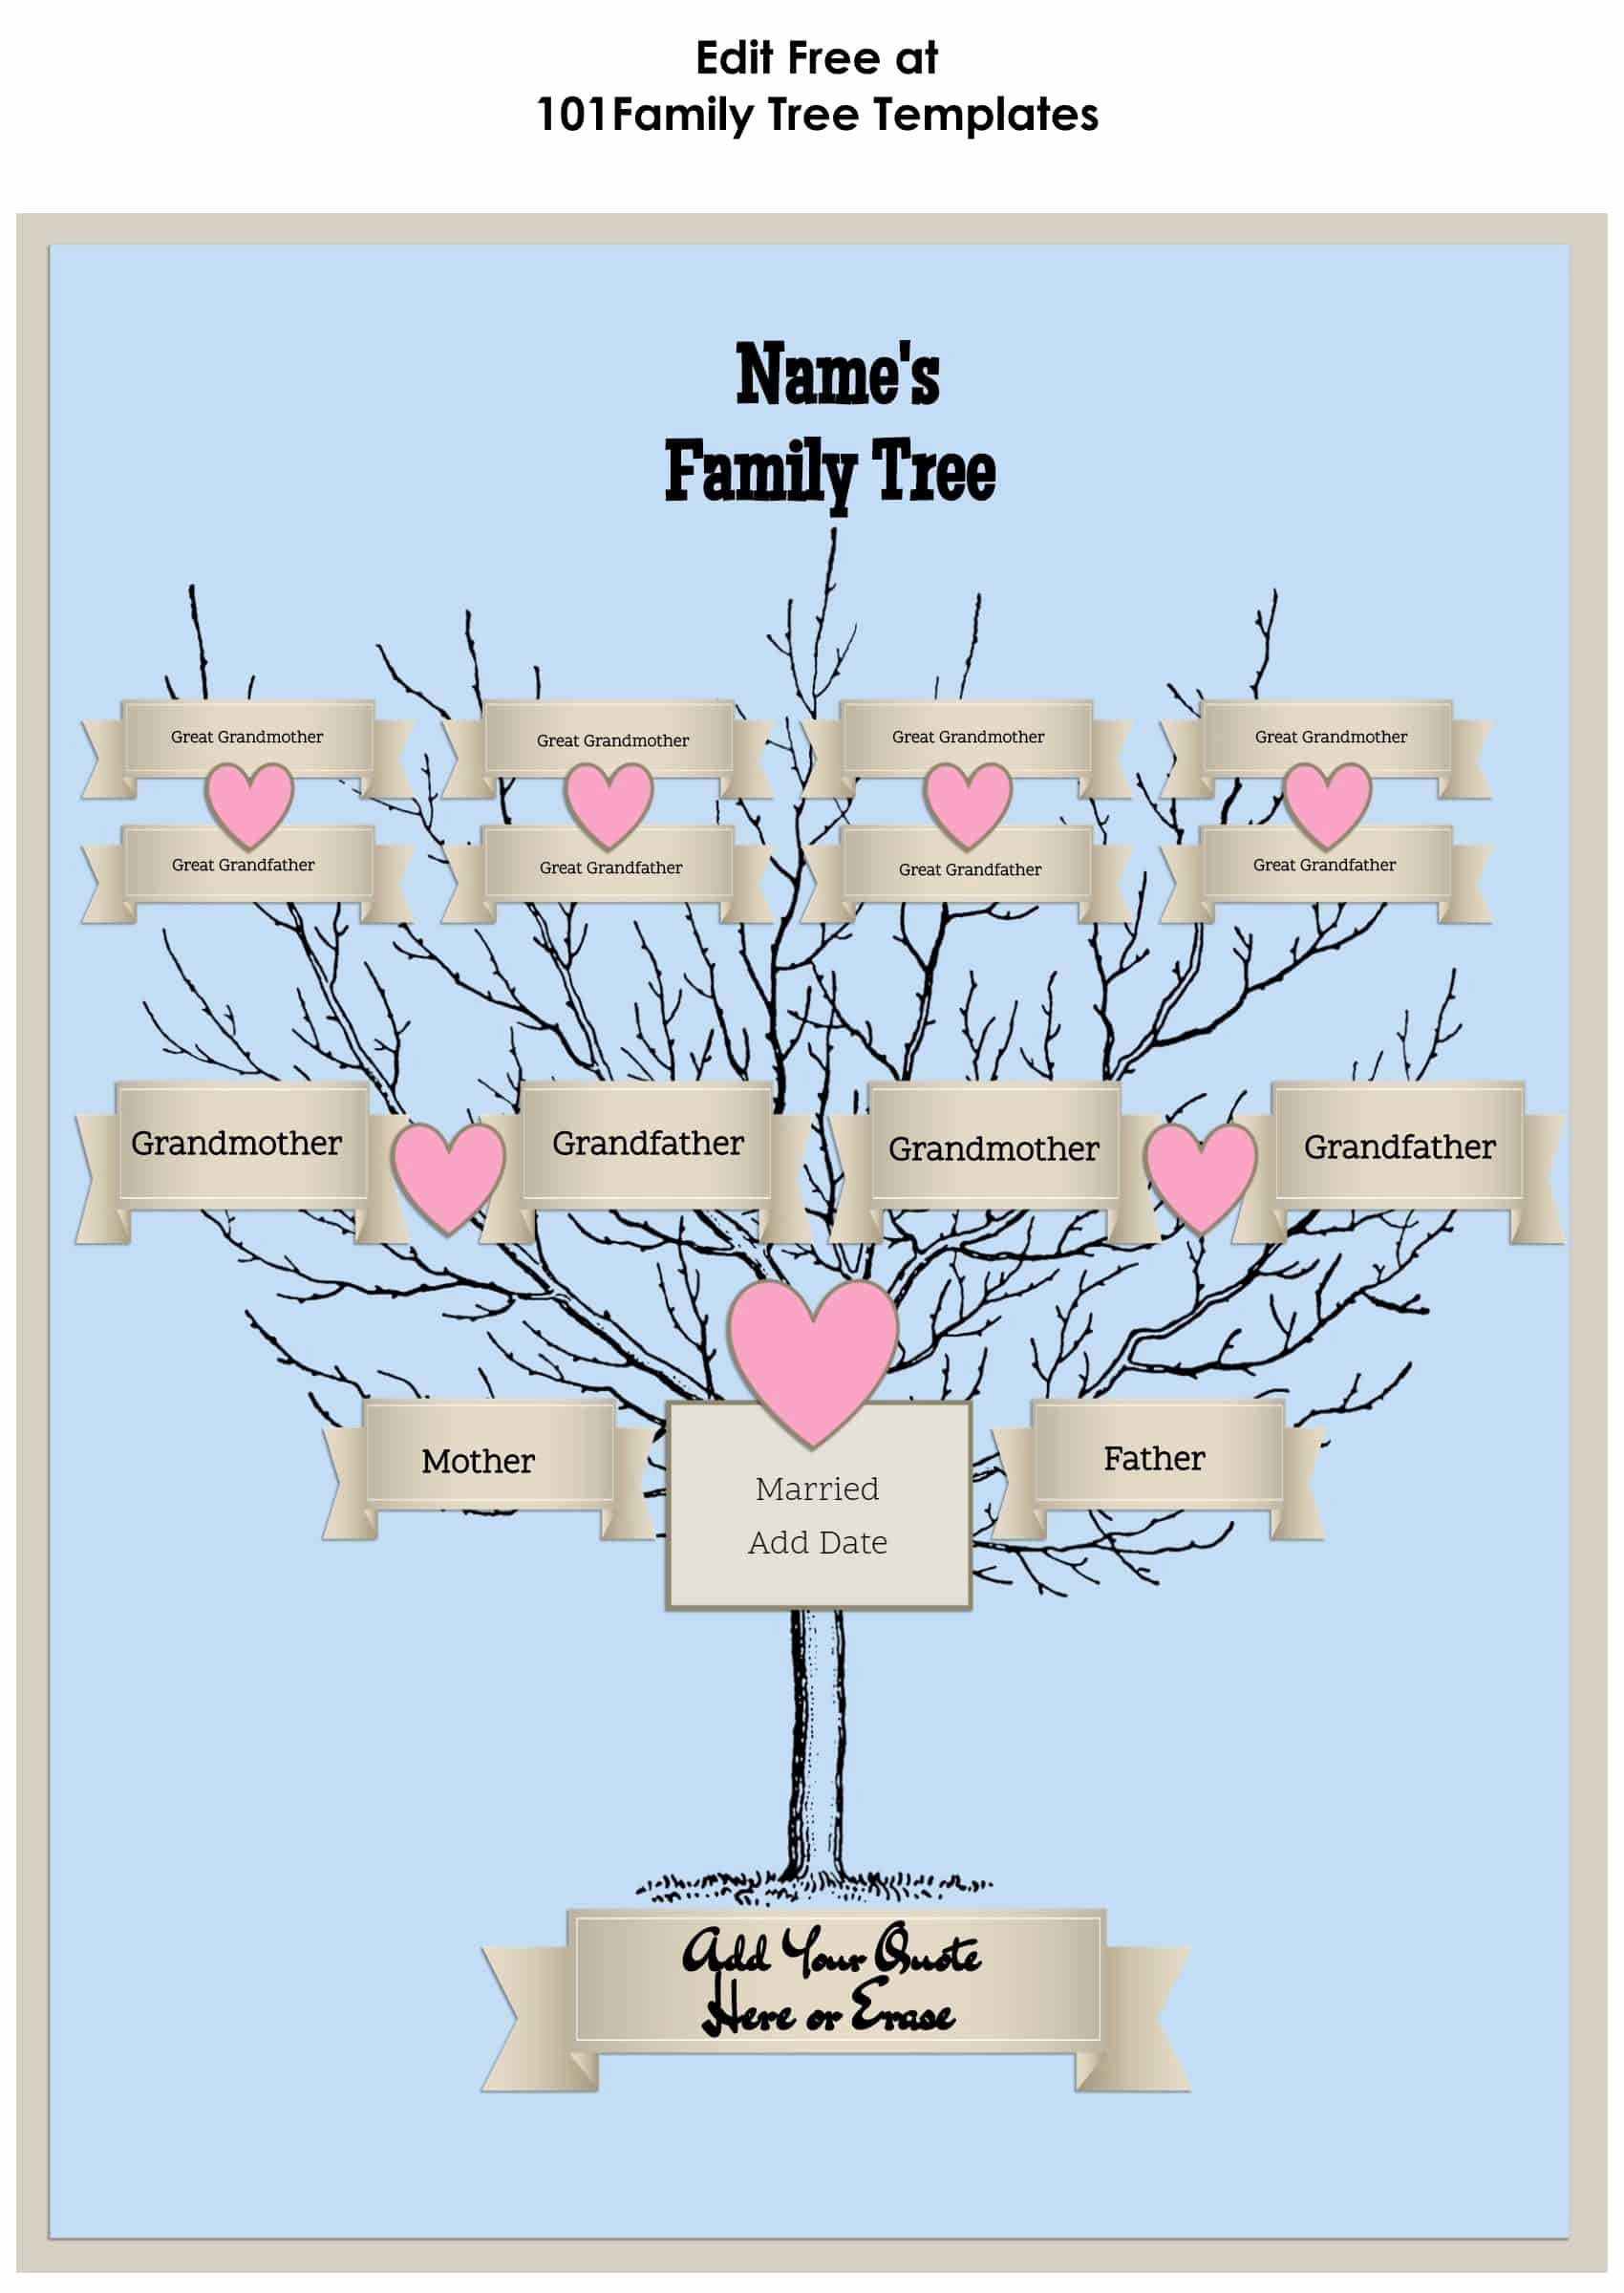 4 Generation Family Tree Templates Beautiful 3 Generation Family Tree Generator